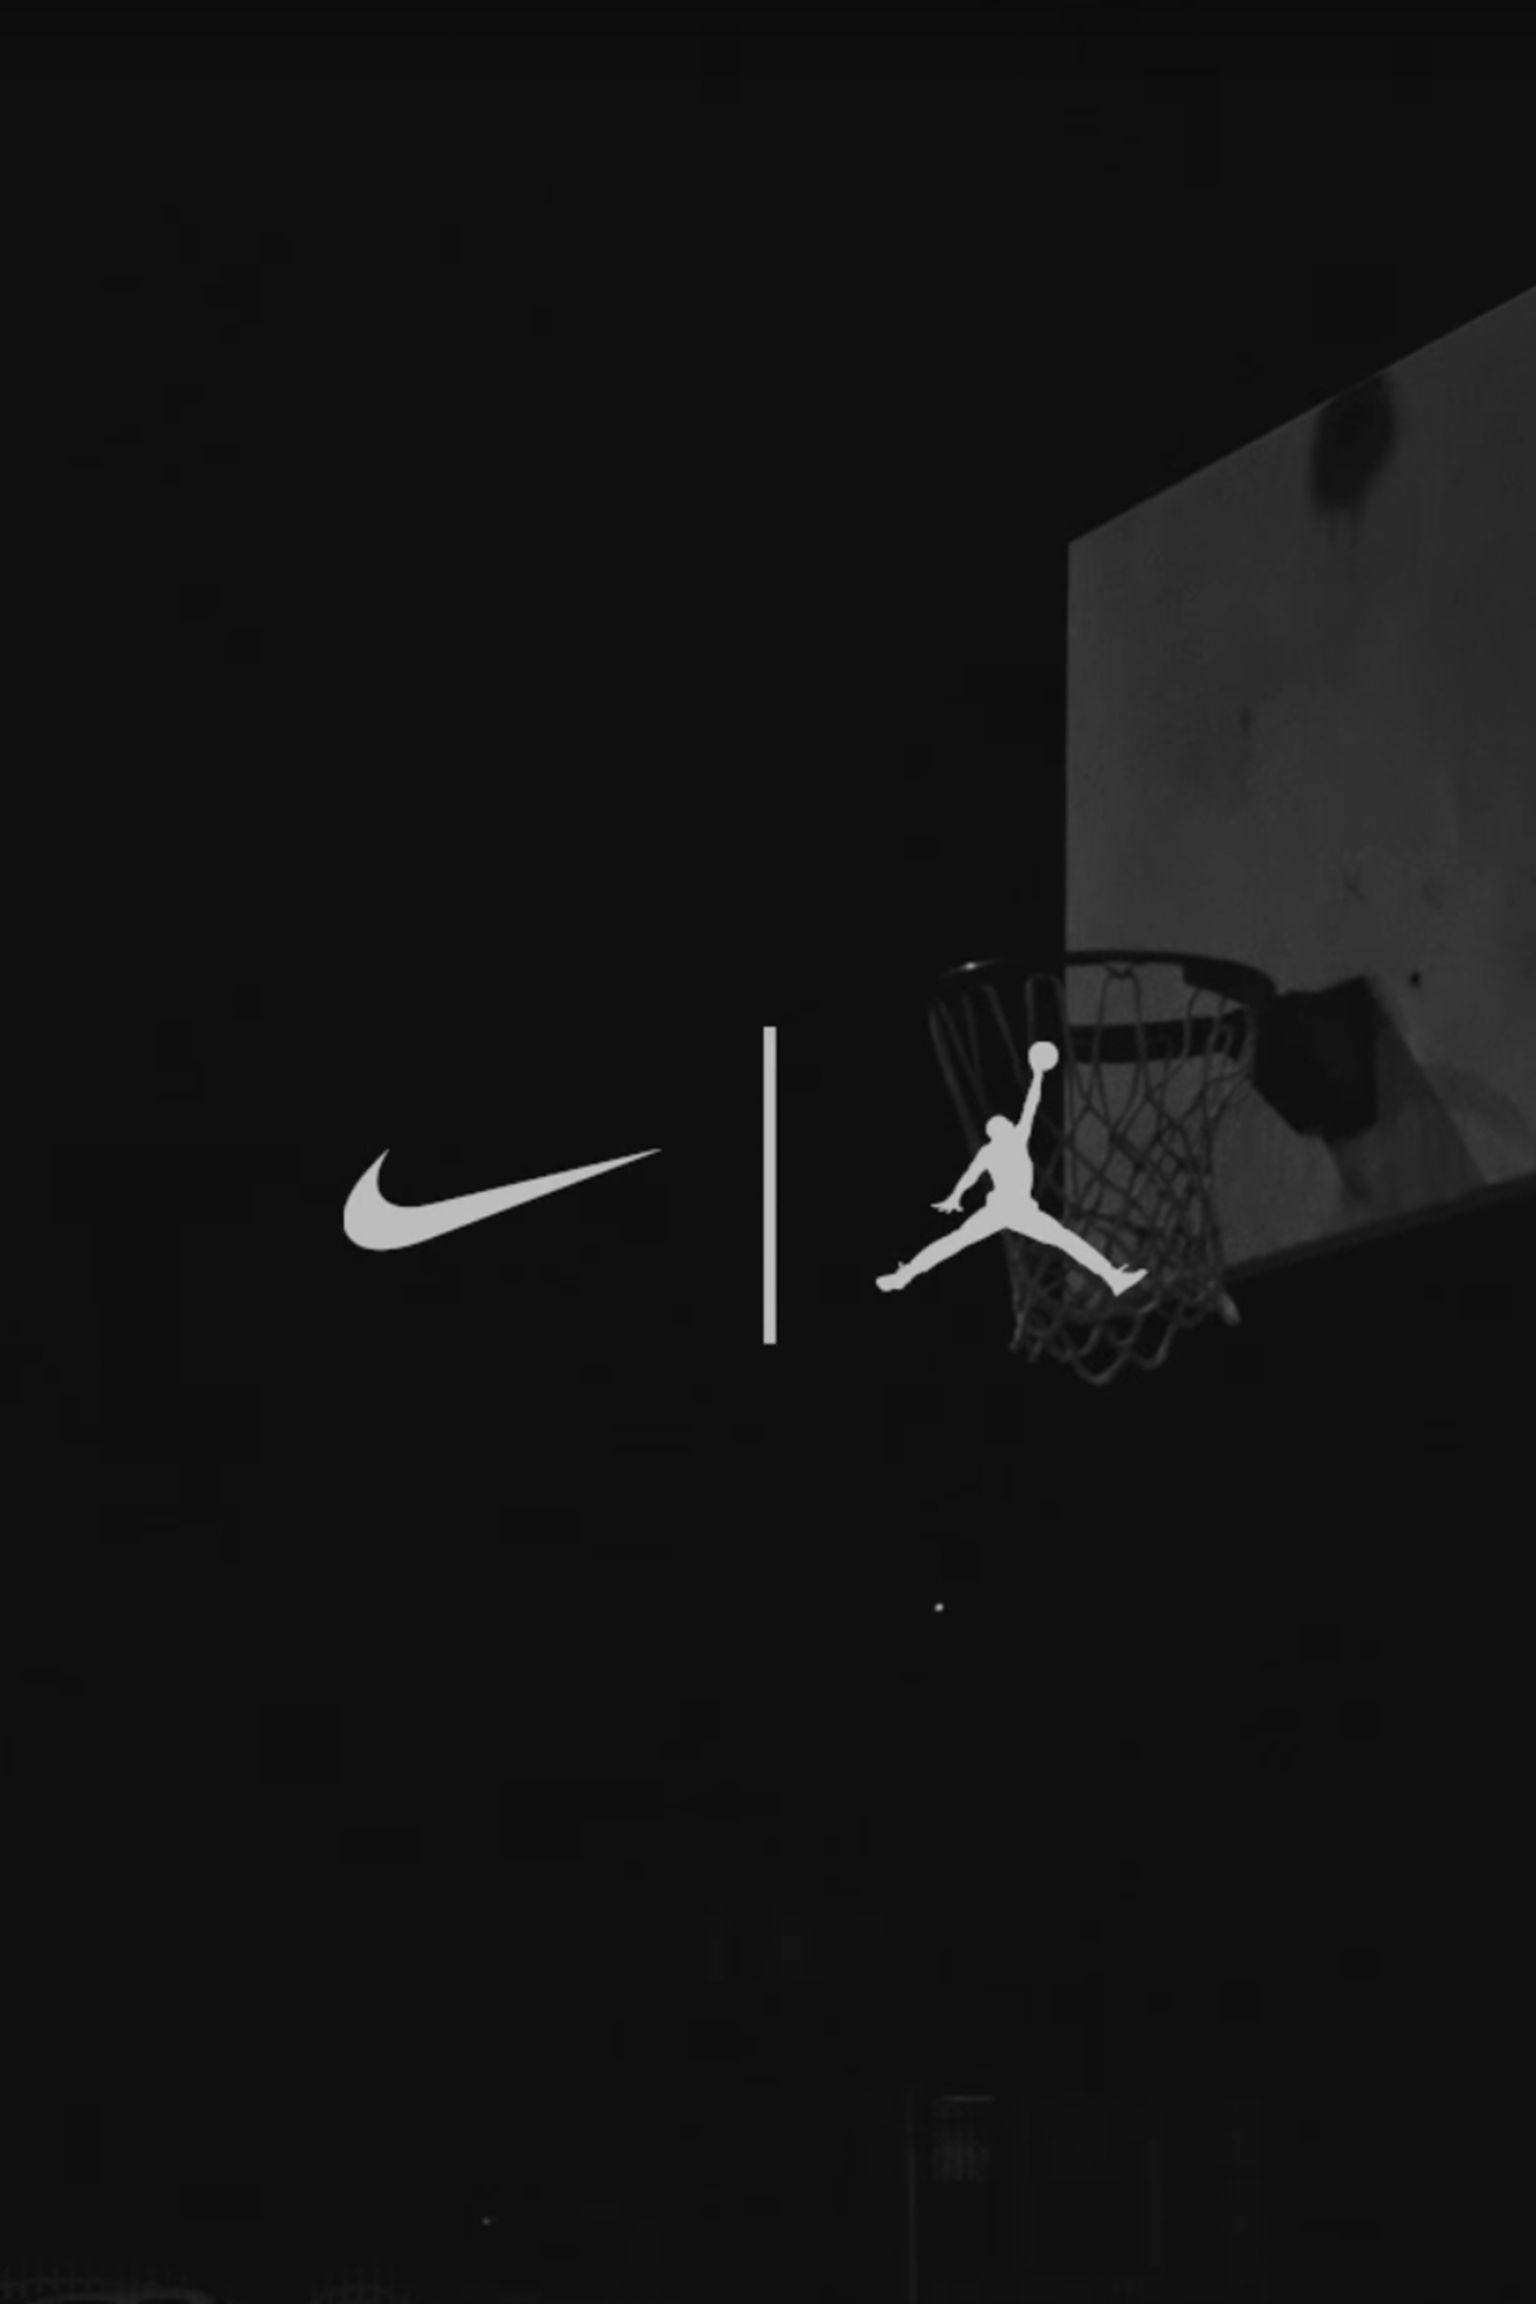 Unlimited Together: Chance the Rapper & Nike Basketball